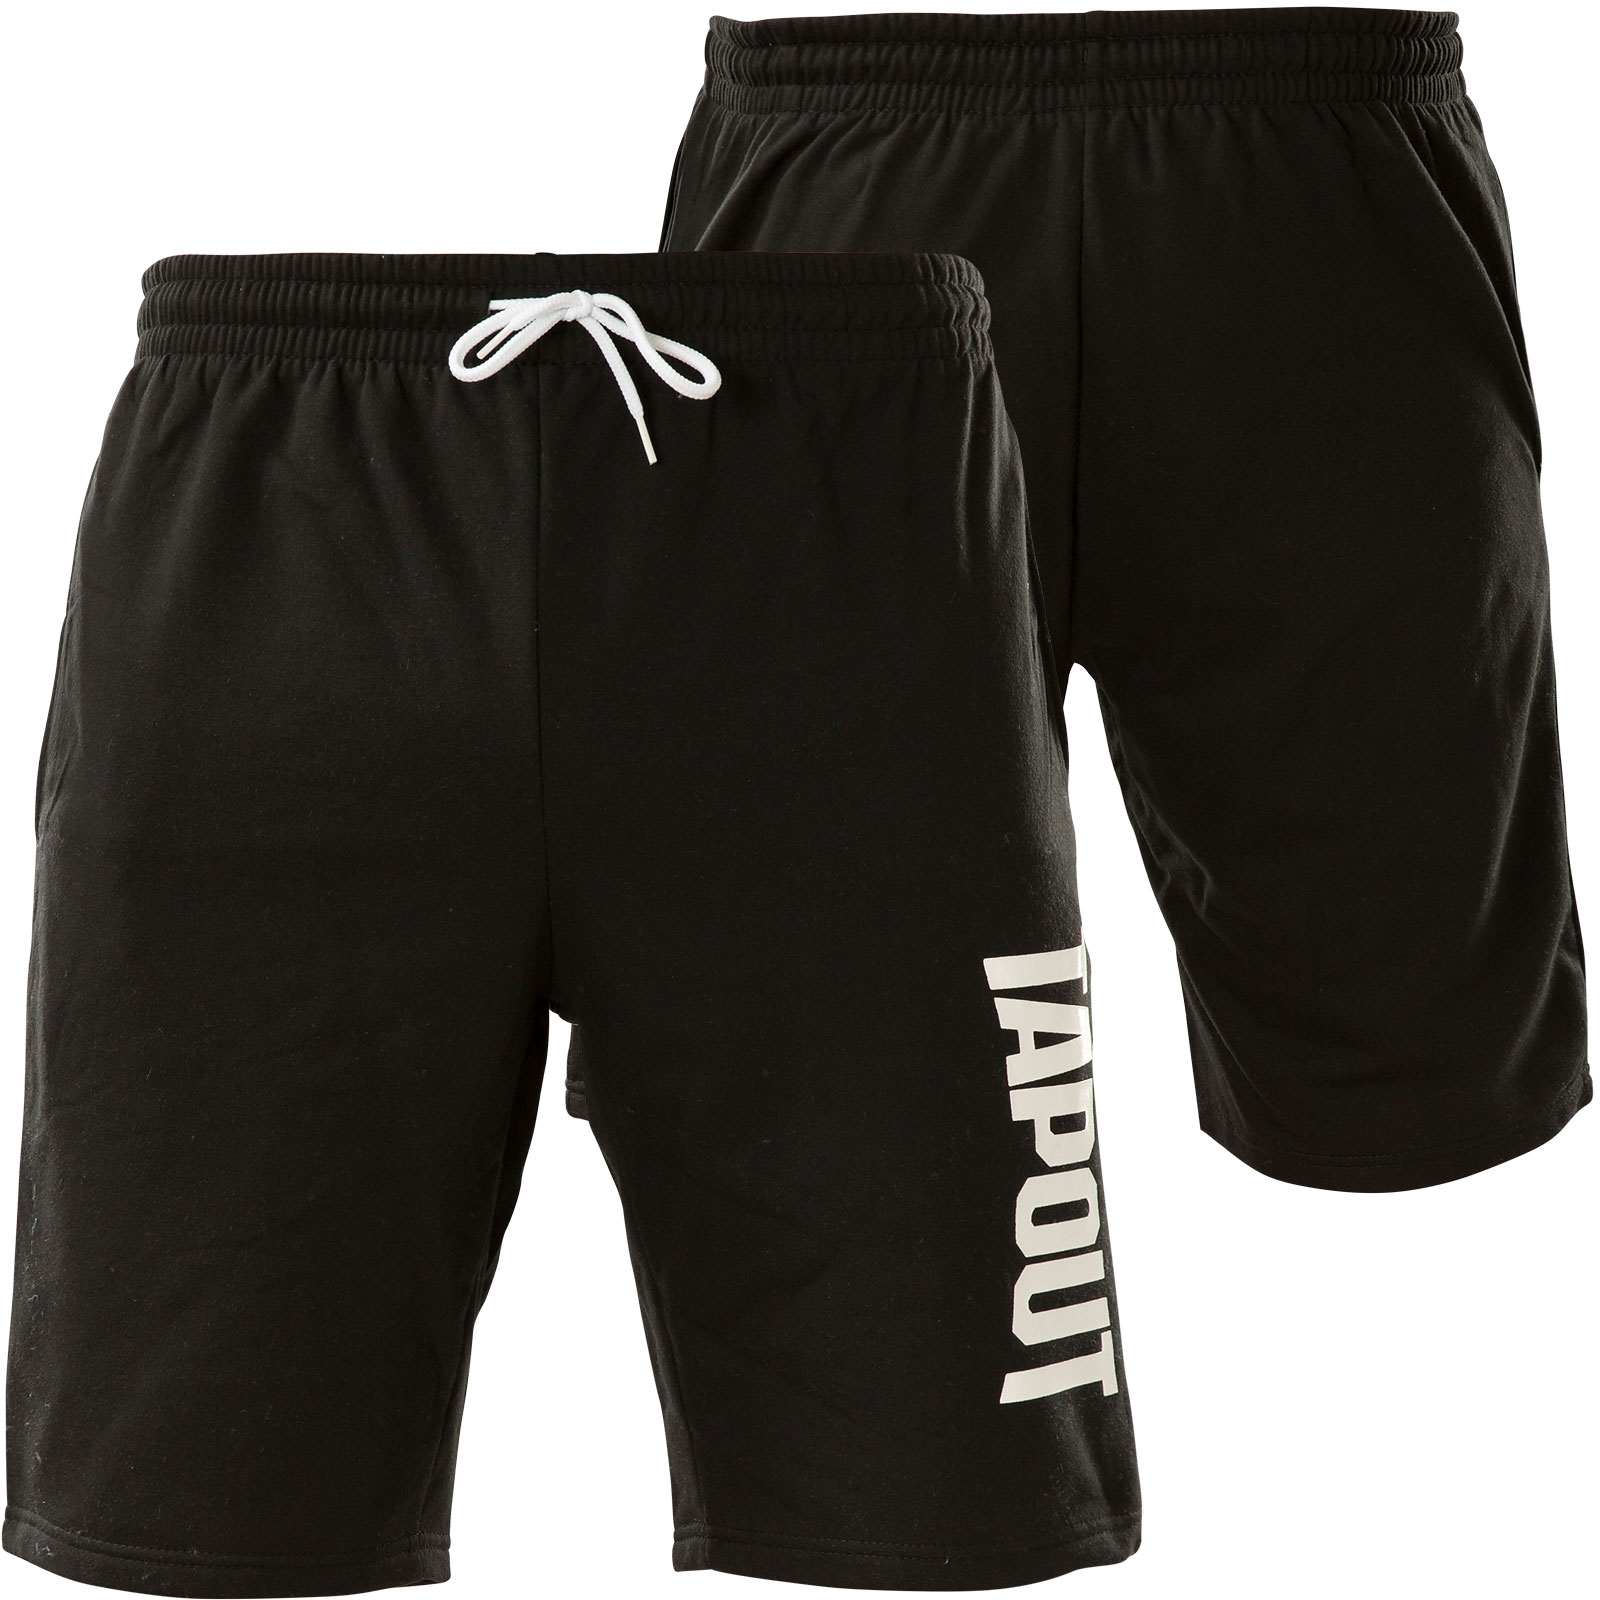 Tapout Shorts Logo Flc with large Tapout lettering